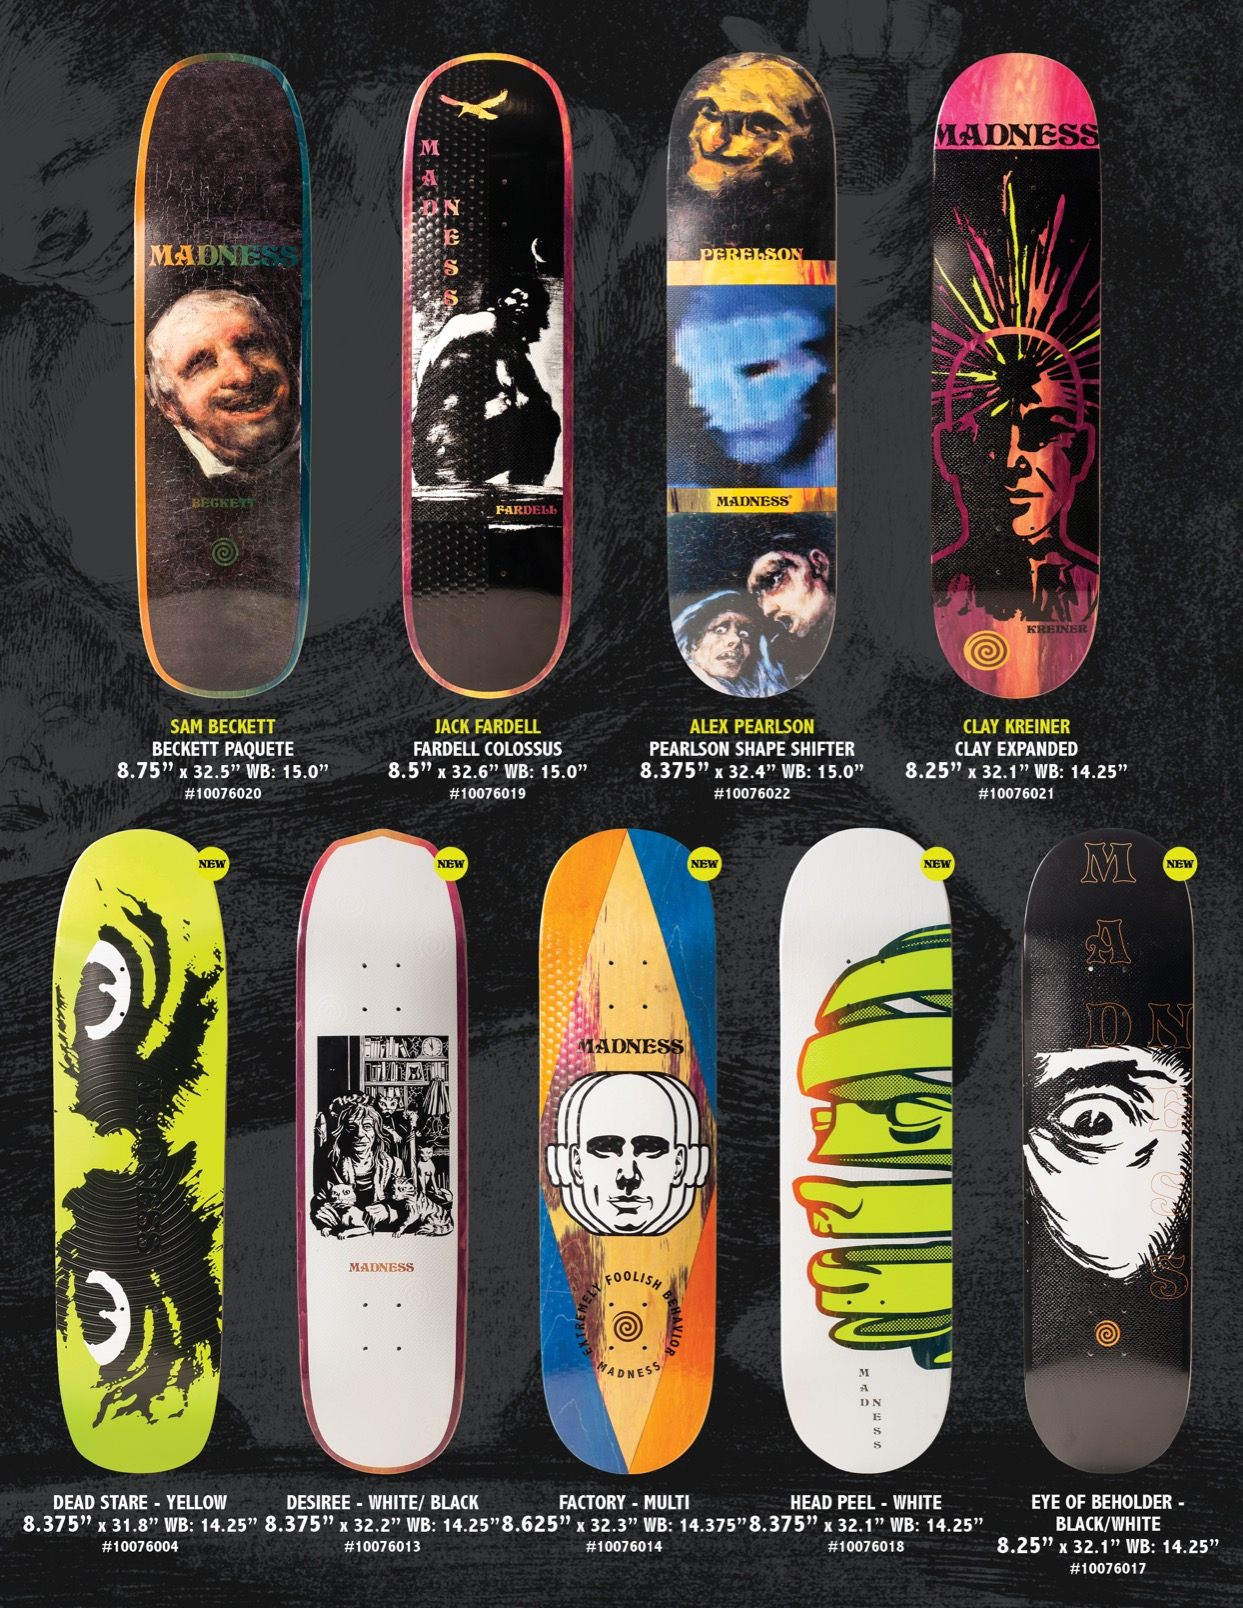 Madness_Skateboards_Catalog_decks-shapes.jpg